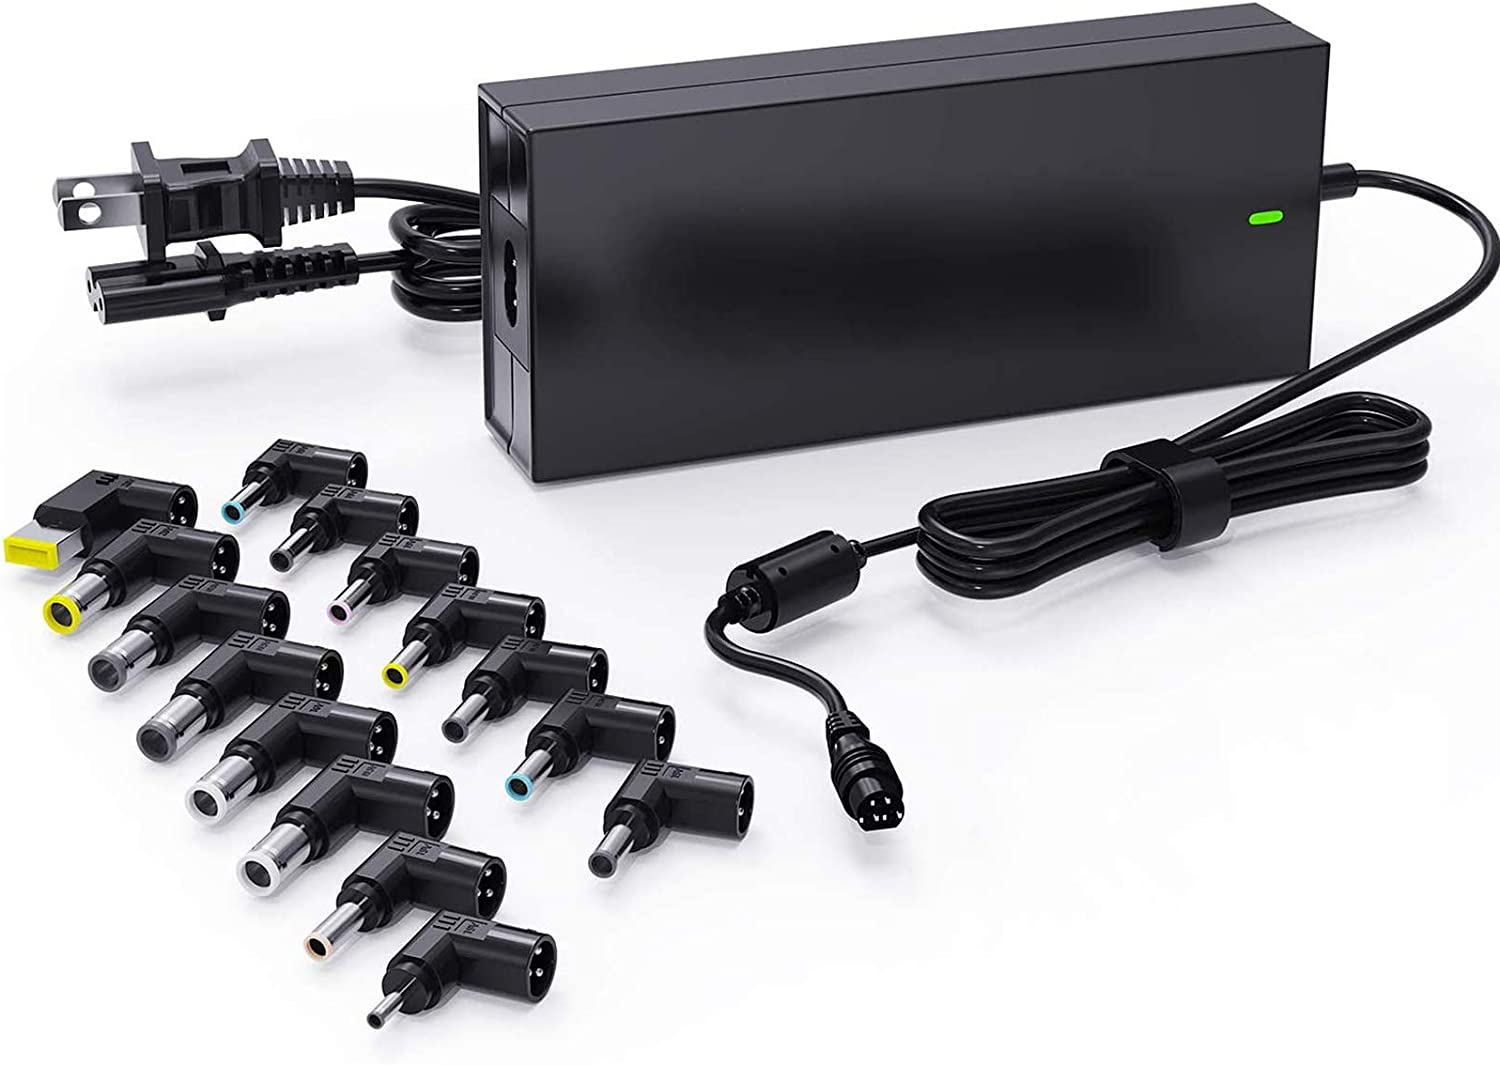 90W Universal Portable Laptop Charger 15-20V with Multi Tips for HP Dell Asus Lenovo Acer JBL IBM Samsung Toshiba Sony Fujitsu Gateway Notebook Ultrabook Power Adapter (Automatic Voltage, 15 Tips)